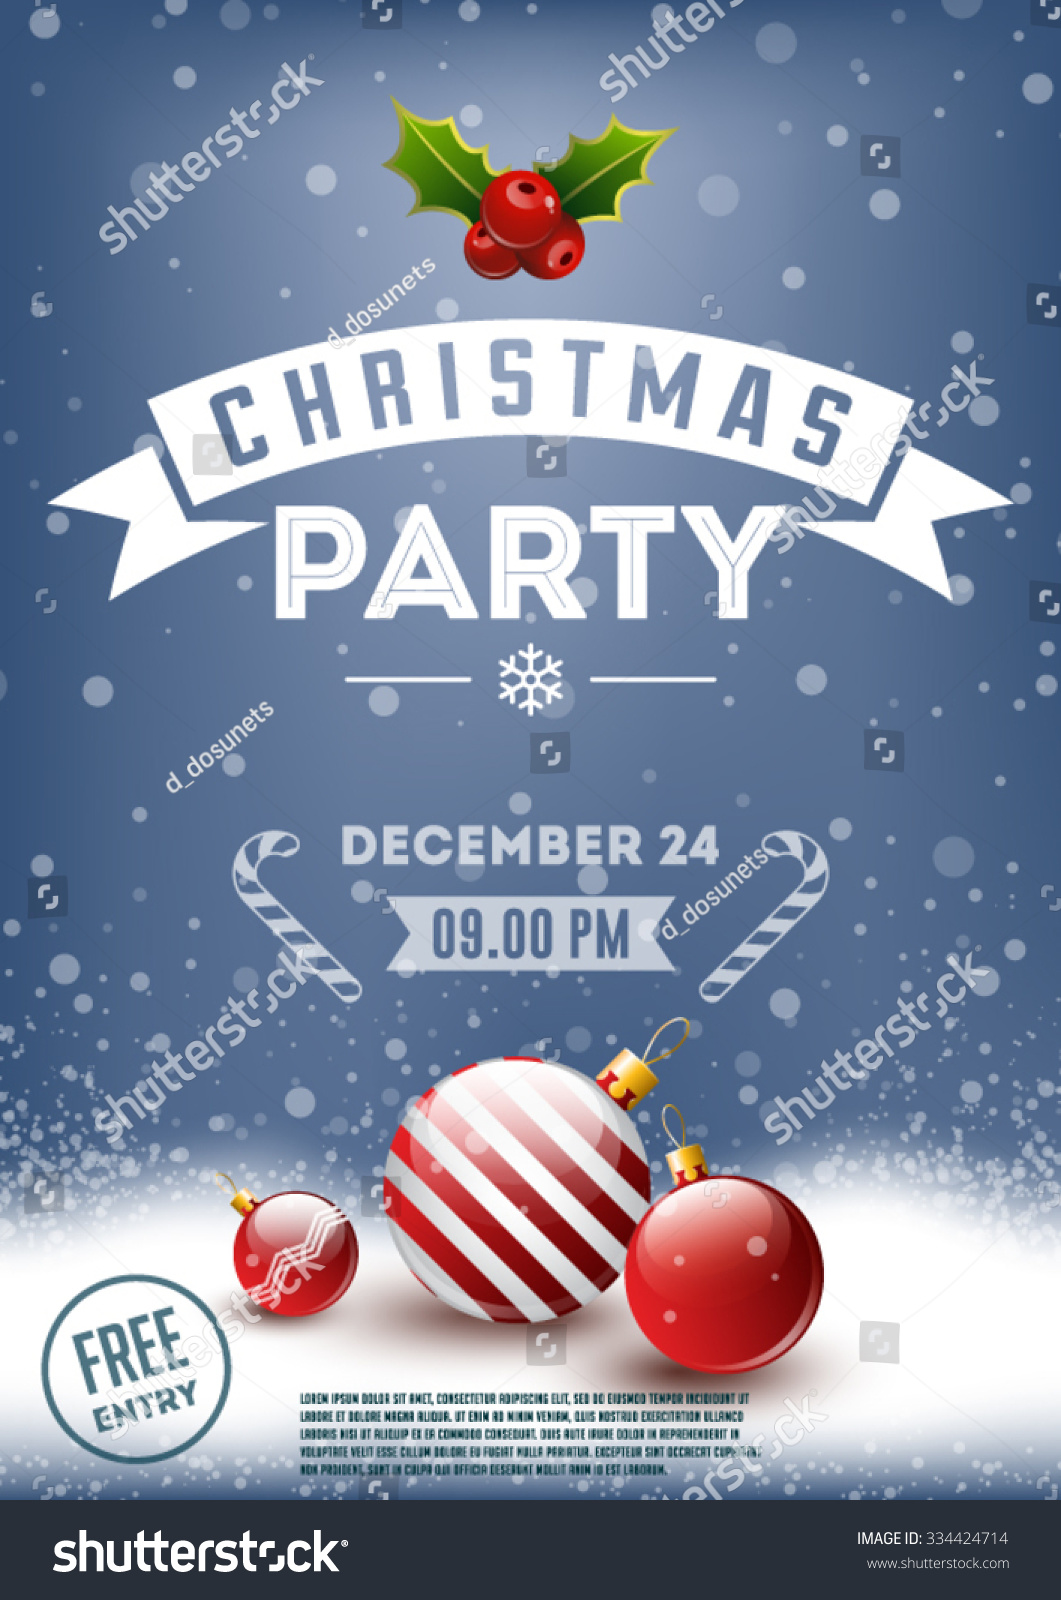 christmas party poster stock vector illustration 334424714 christmas party poster stock vector illustration 334424714 shutterstock